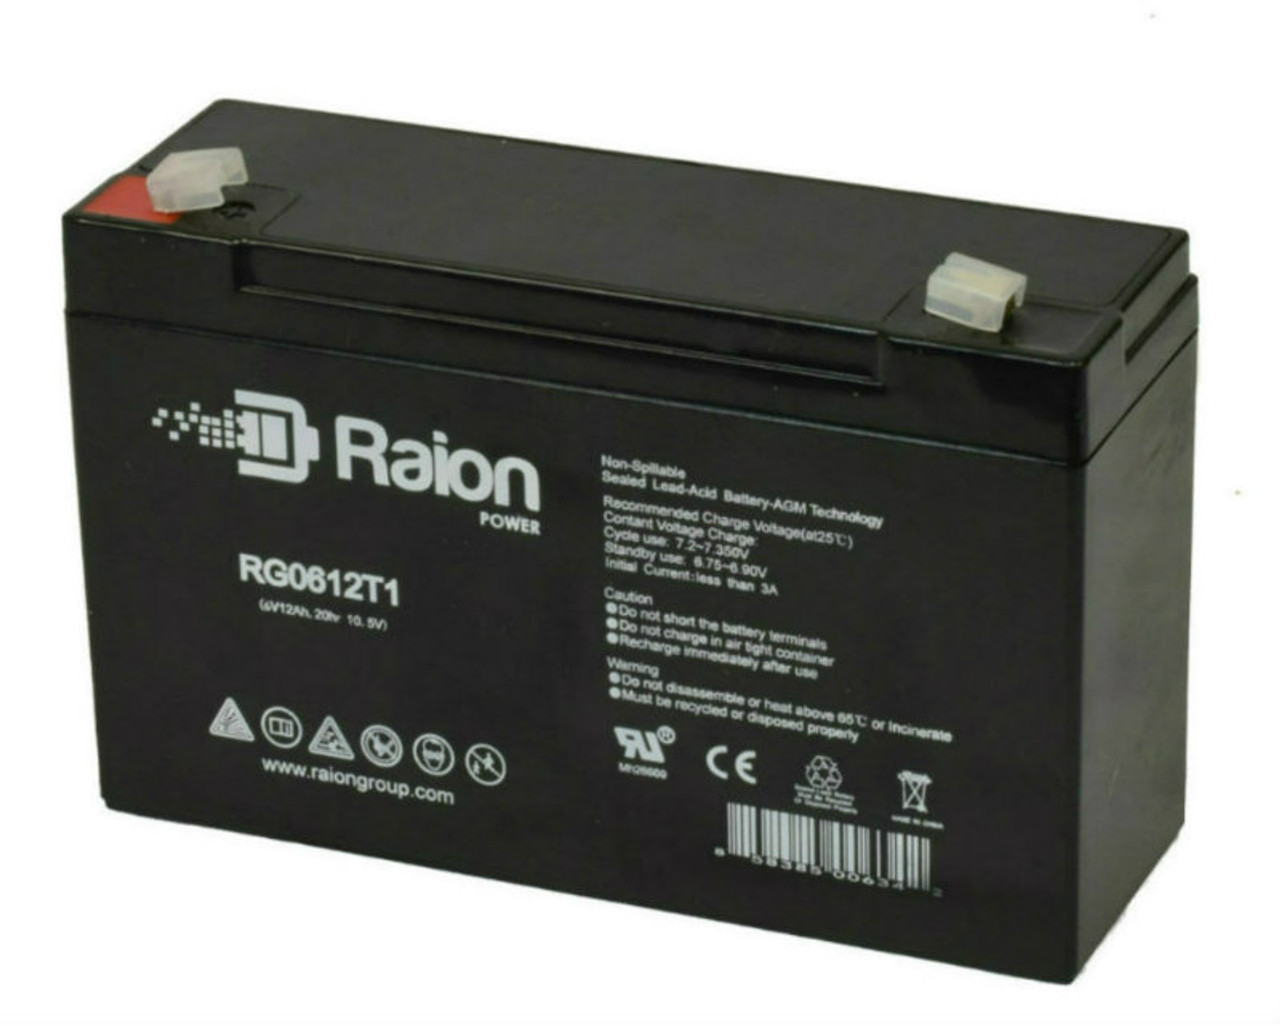 Raion Power RG06120T1 Replacement Battery Pack for Dynaray DR70930S emergency light